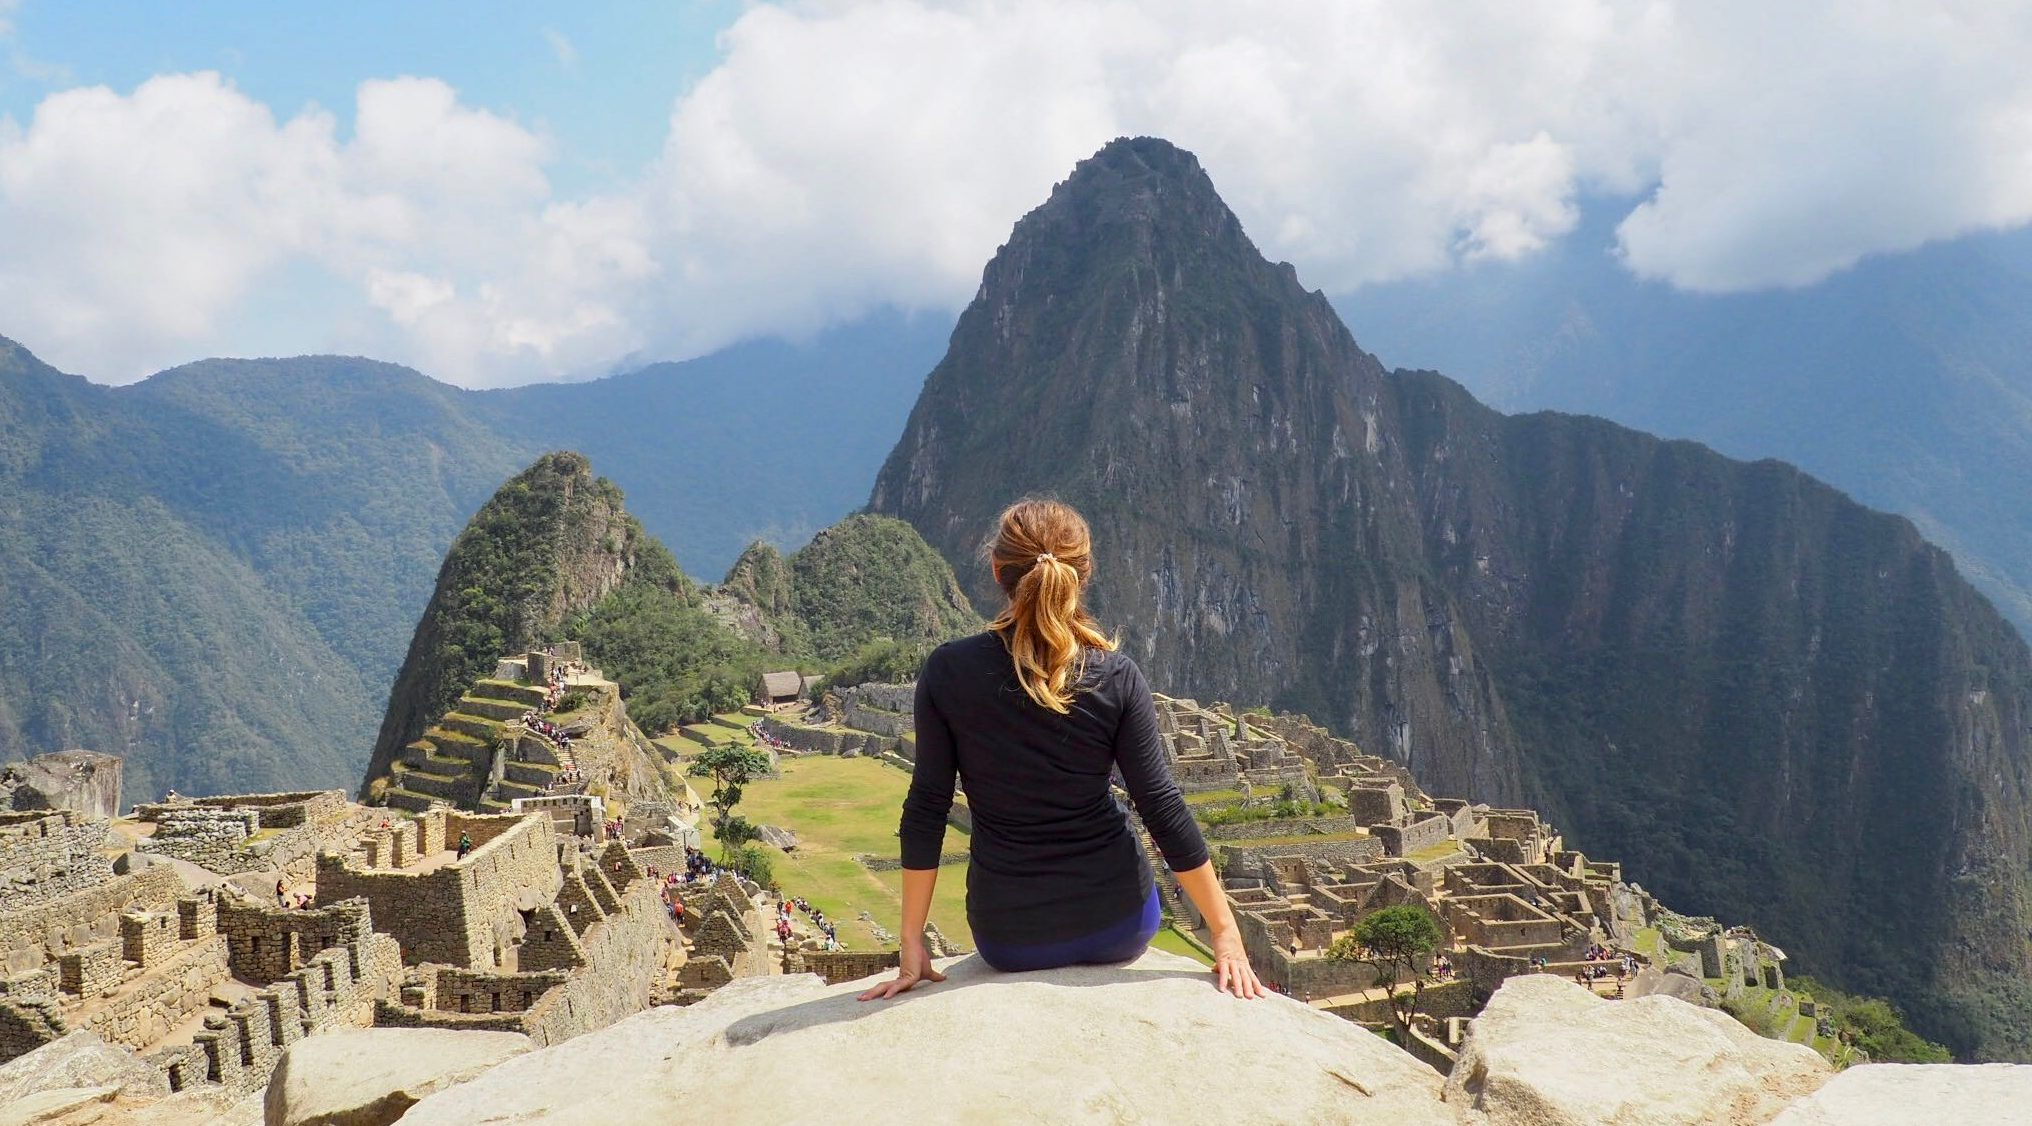 Views over Machu Picchu